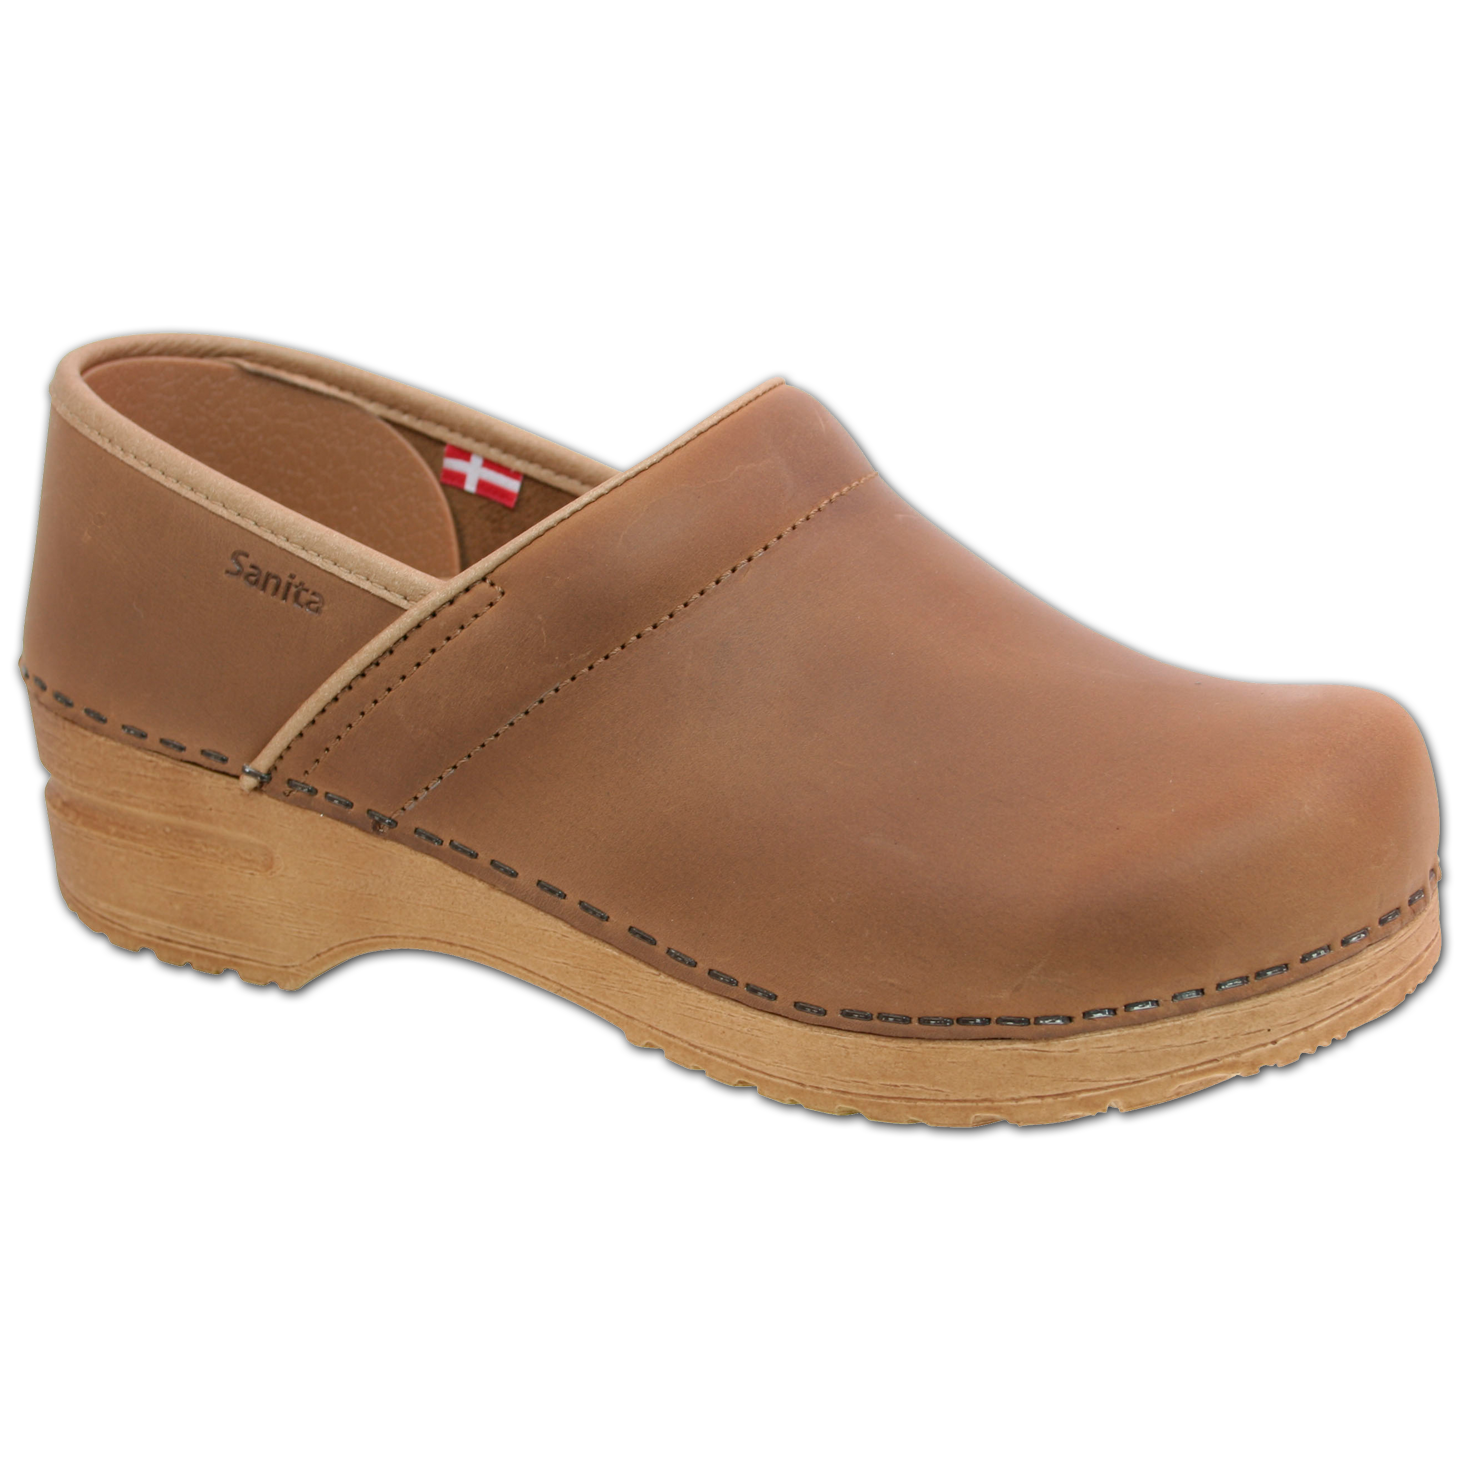 Pro. Oiled Leather Women's - Second